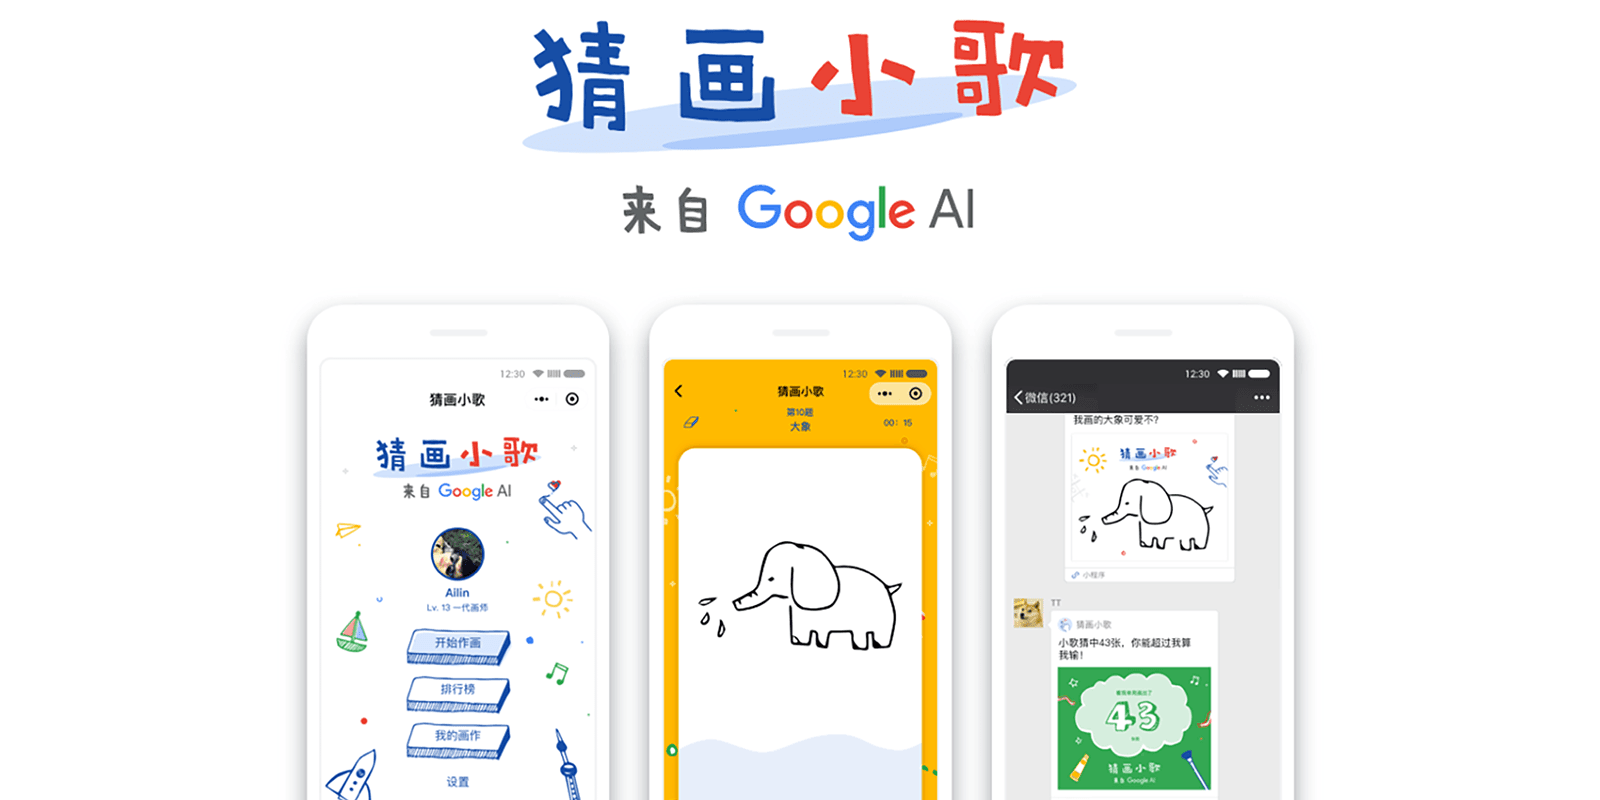 Google Ai Launches Quick Draw Like Wechat Game In China